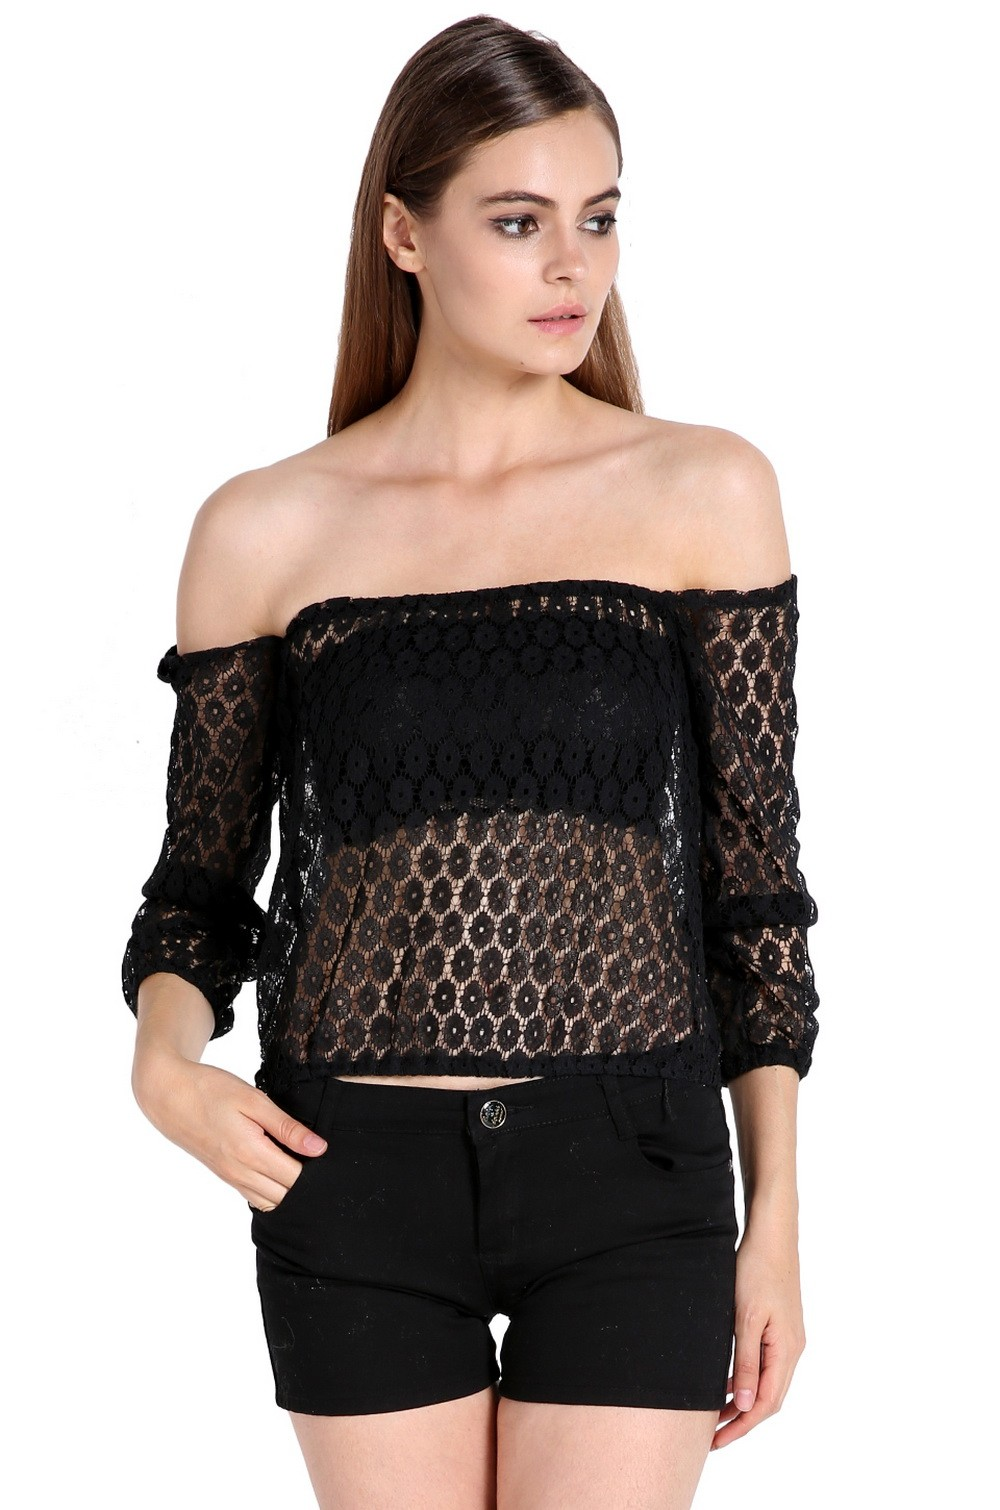 2014 High Quality Sexy Tops Off Shoulder Lace Blouses Women Chiffon Shirt Summer Autumn Floral Crochet Black and White SV07(China (Mainland))